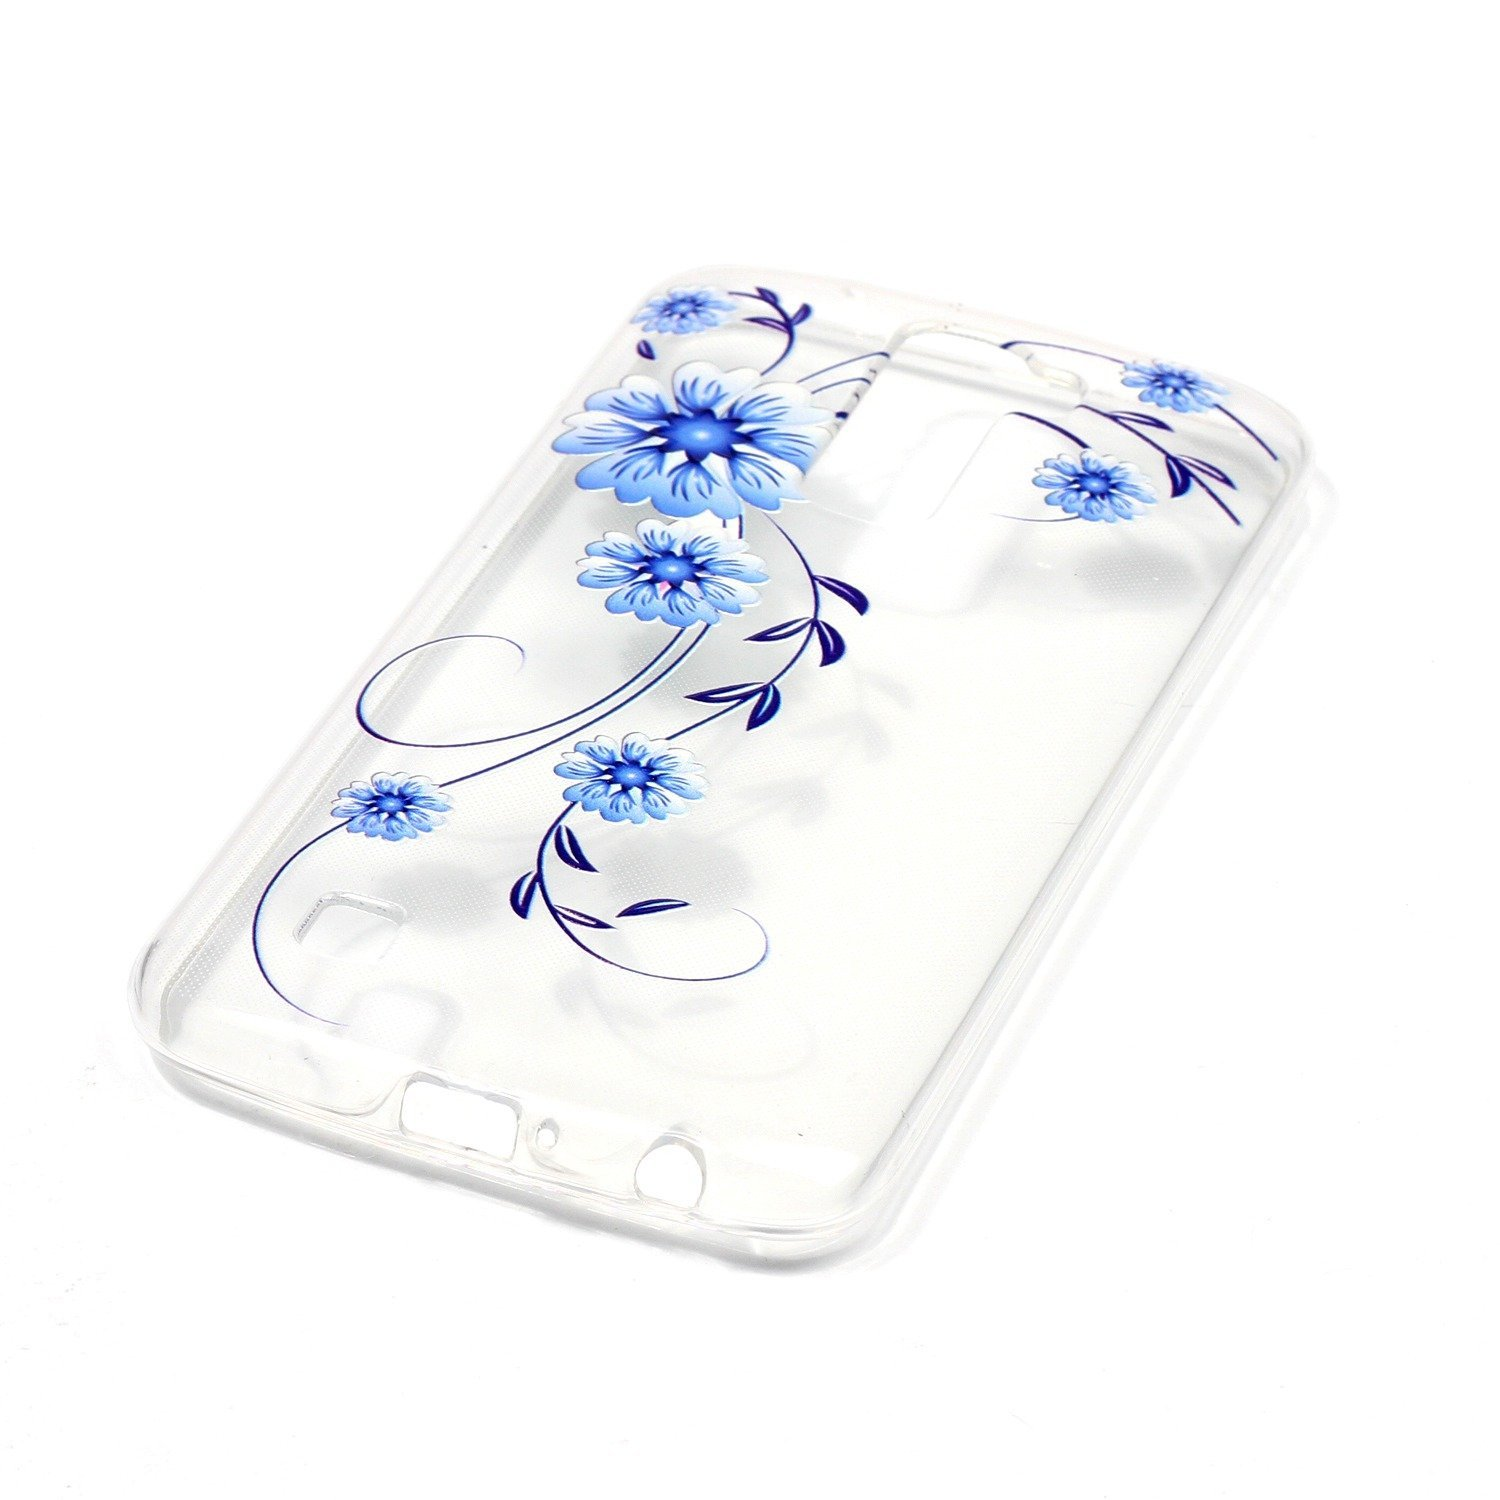 LG K10 Case, Premier LTE Case, TPU Silicone Transparent Ultra Thin Design Soft Back Cover with Embossed Pattern Small 0rchid For LG K10 4G LTE K420N K430 ...